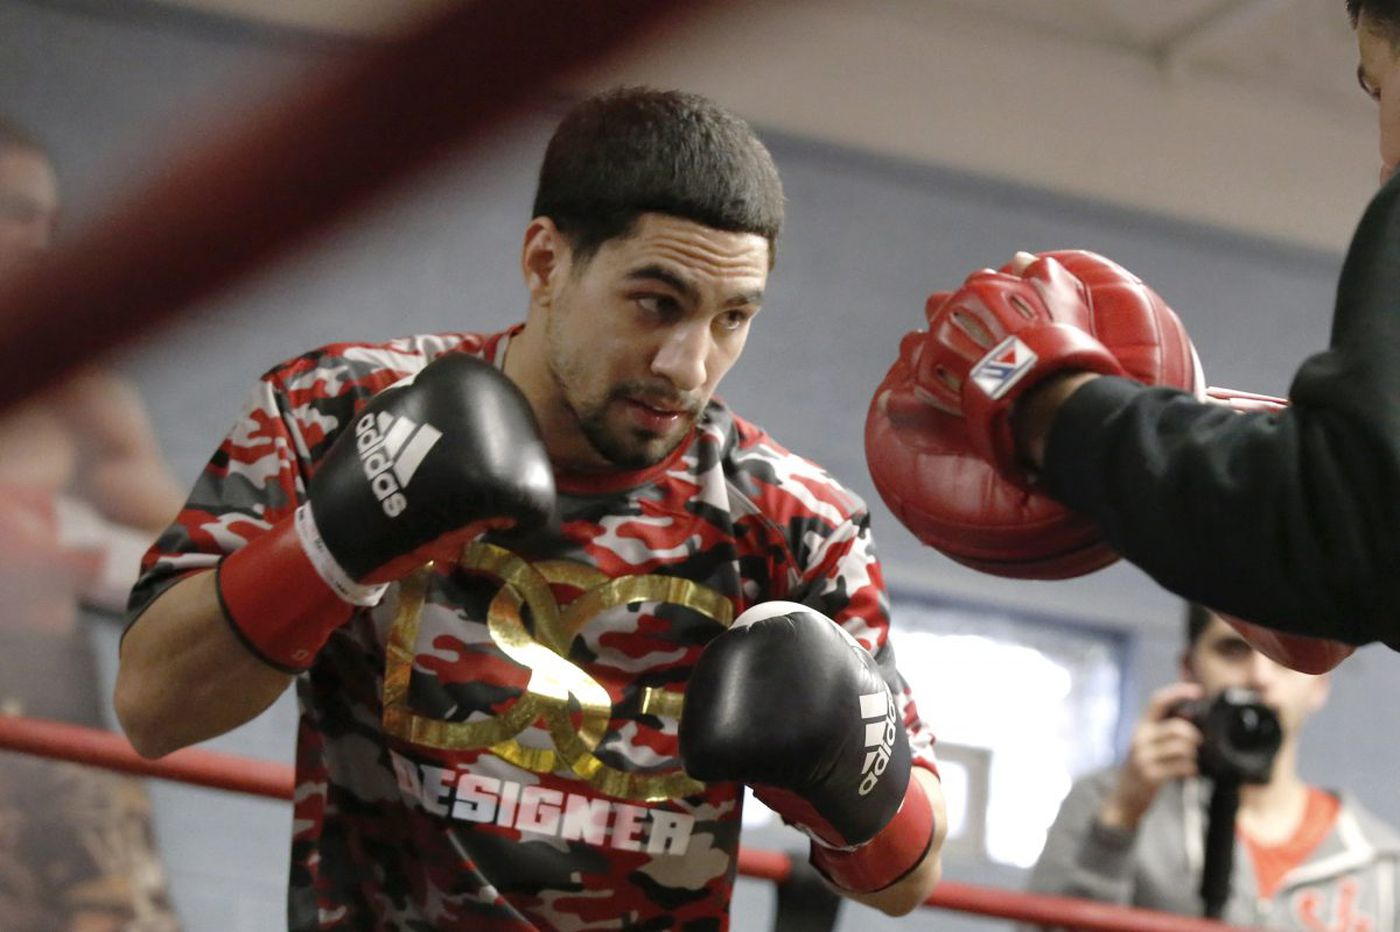 North Philadelphia boxer Danny Garcia takes the ring Saturday against Brandon Rios